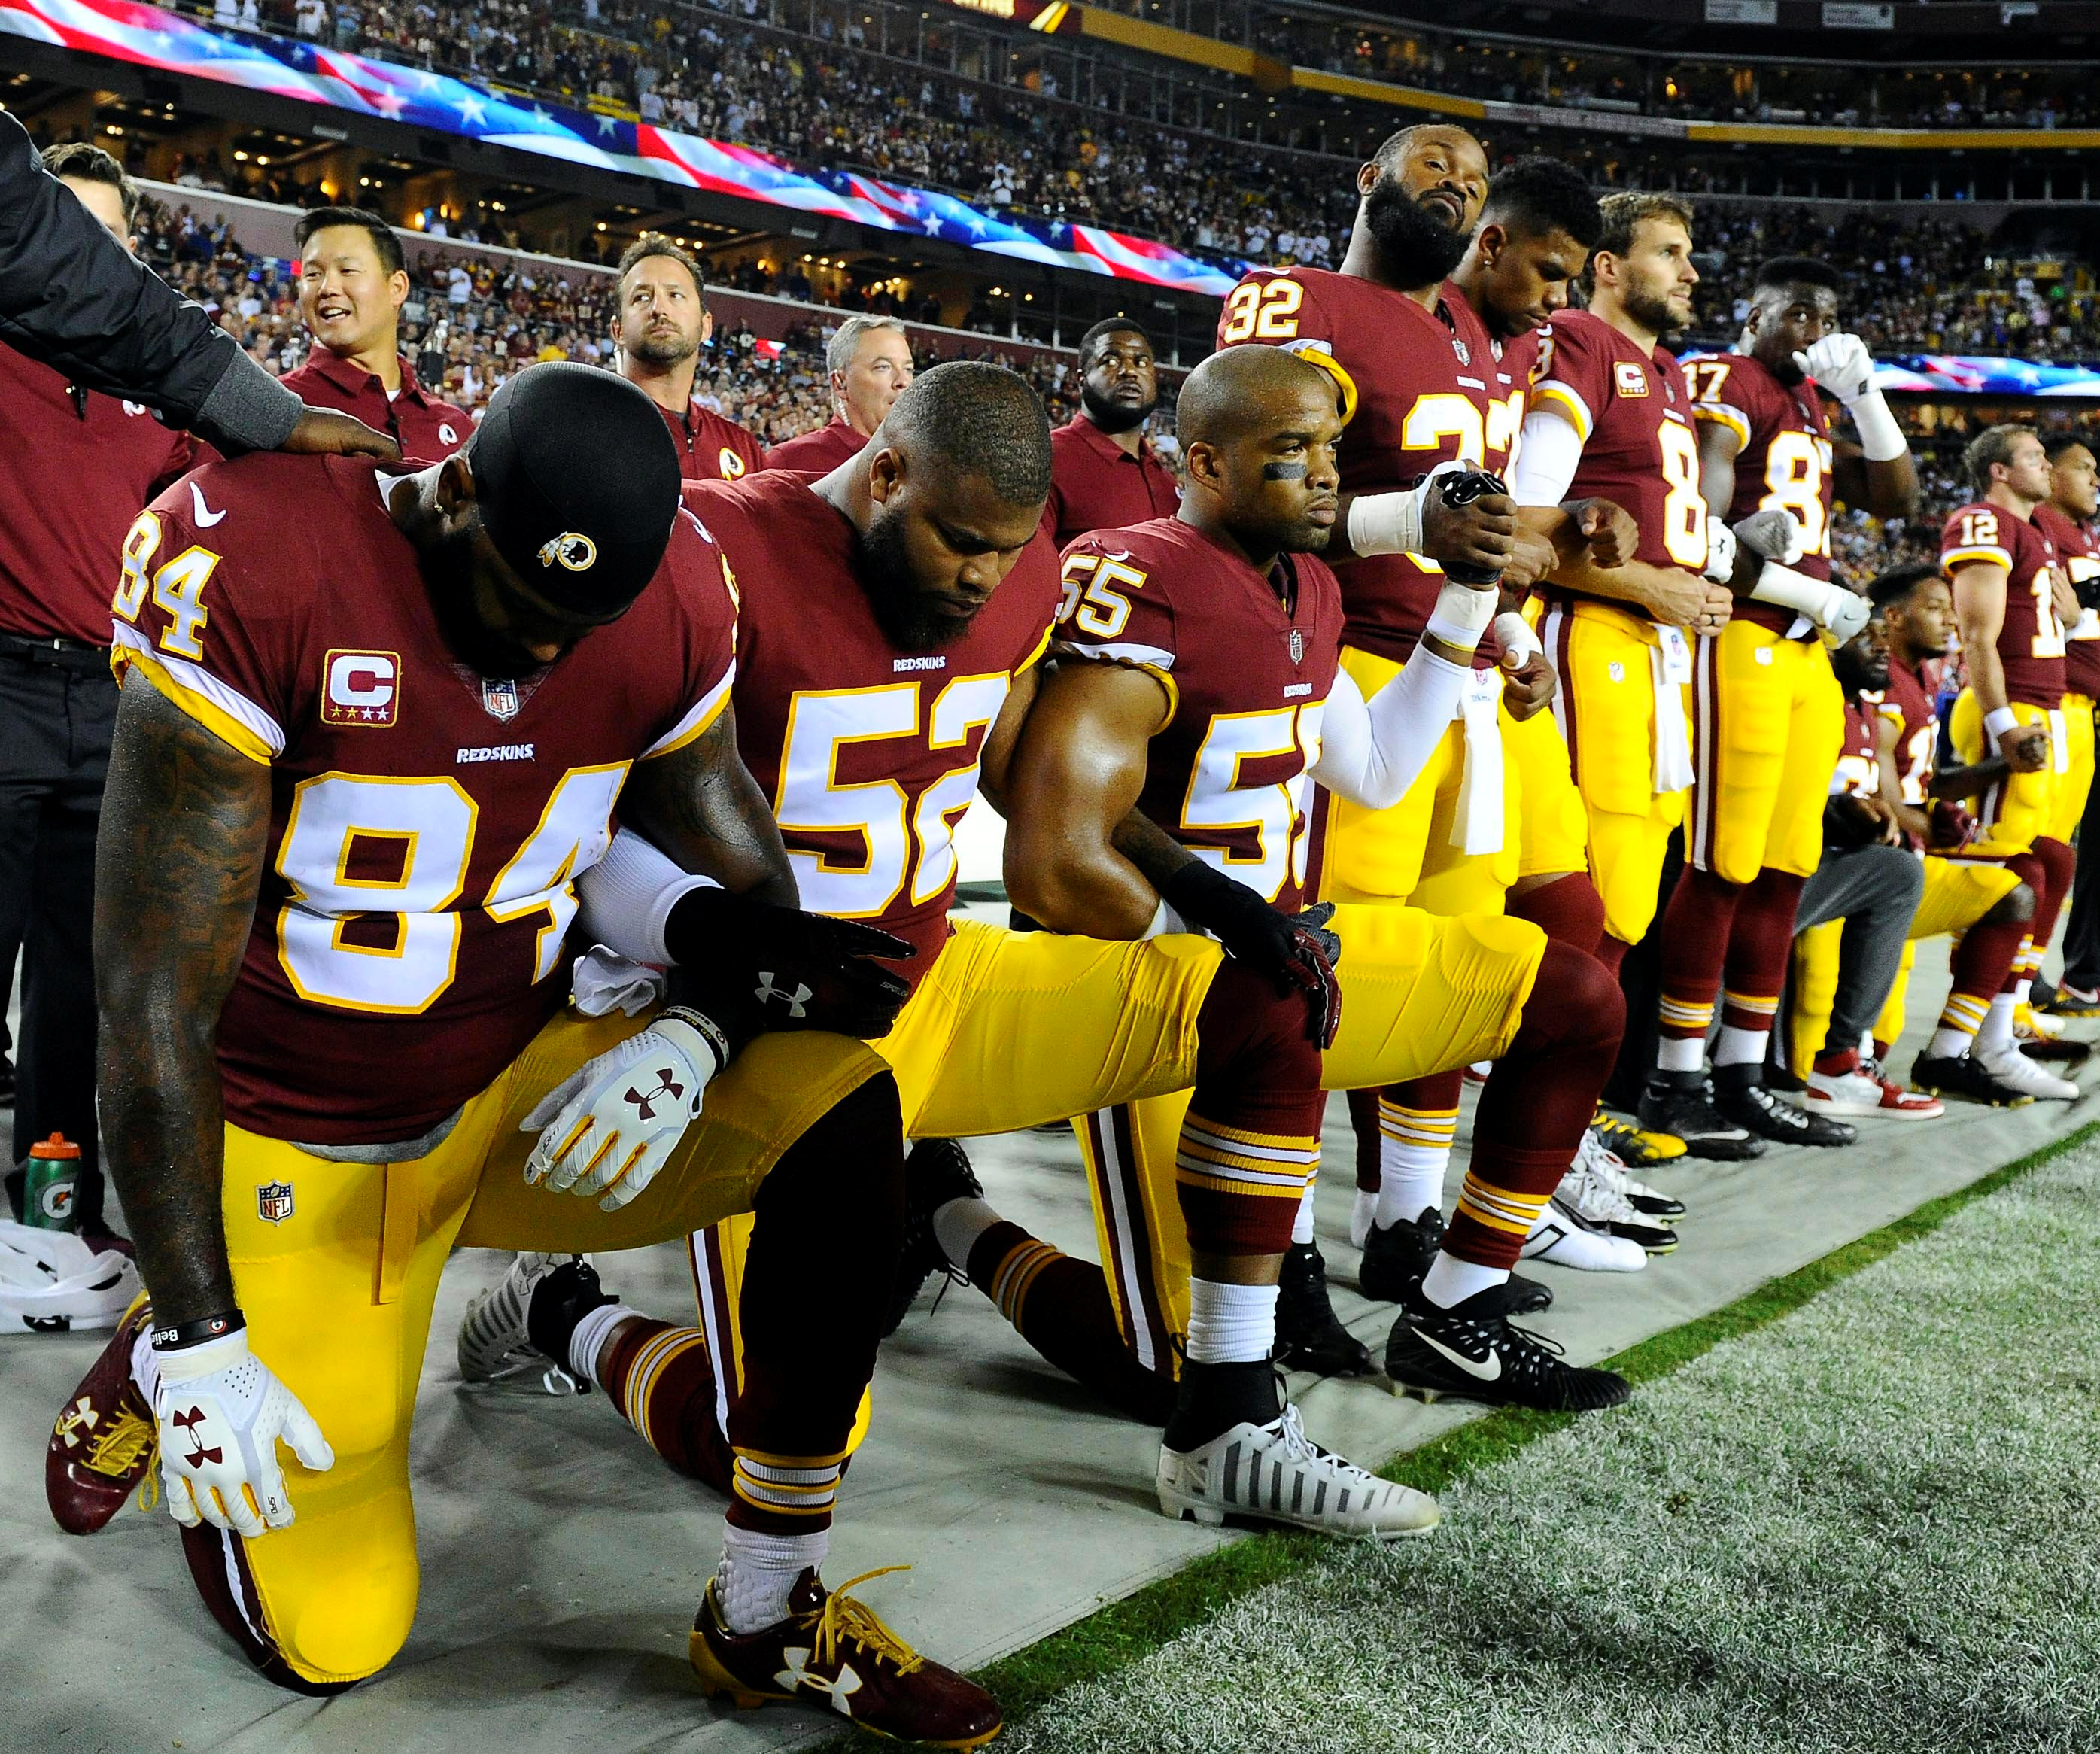 The Percentage Of Nfl Players That Didnt Stand For The Flag Is Unacceptable The Daily Caller